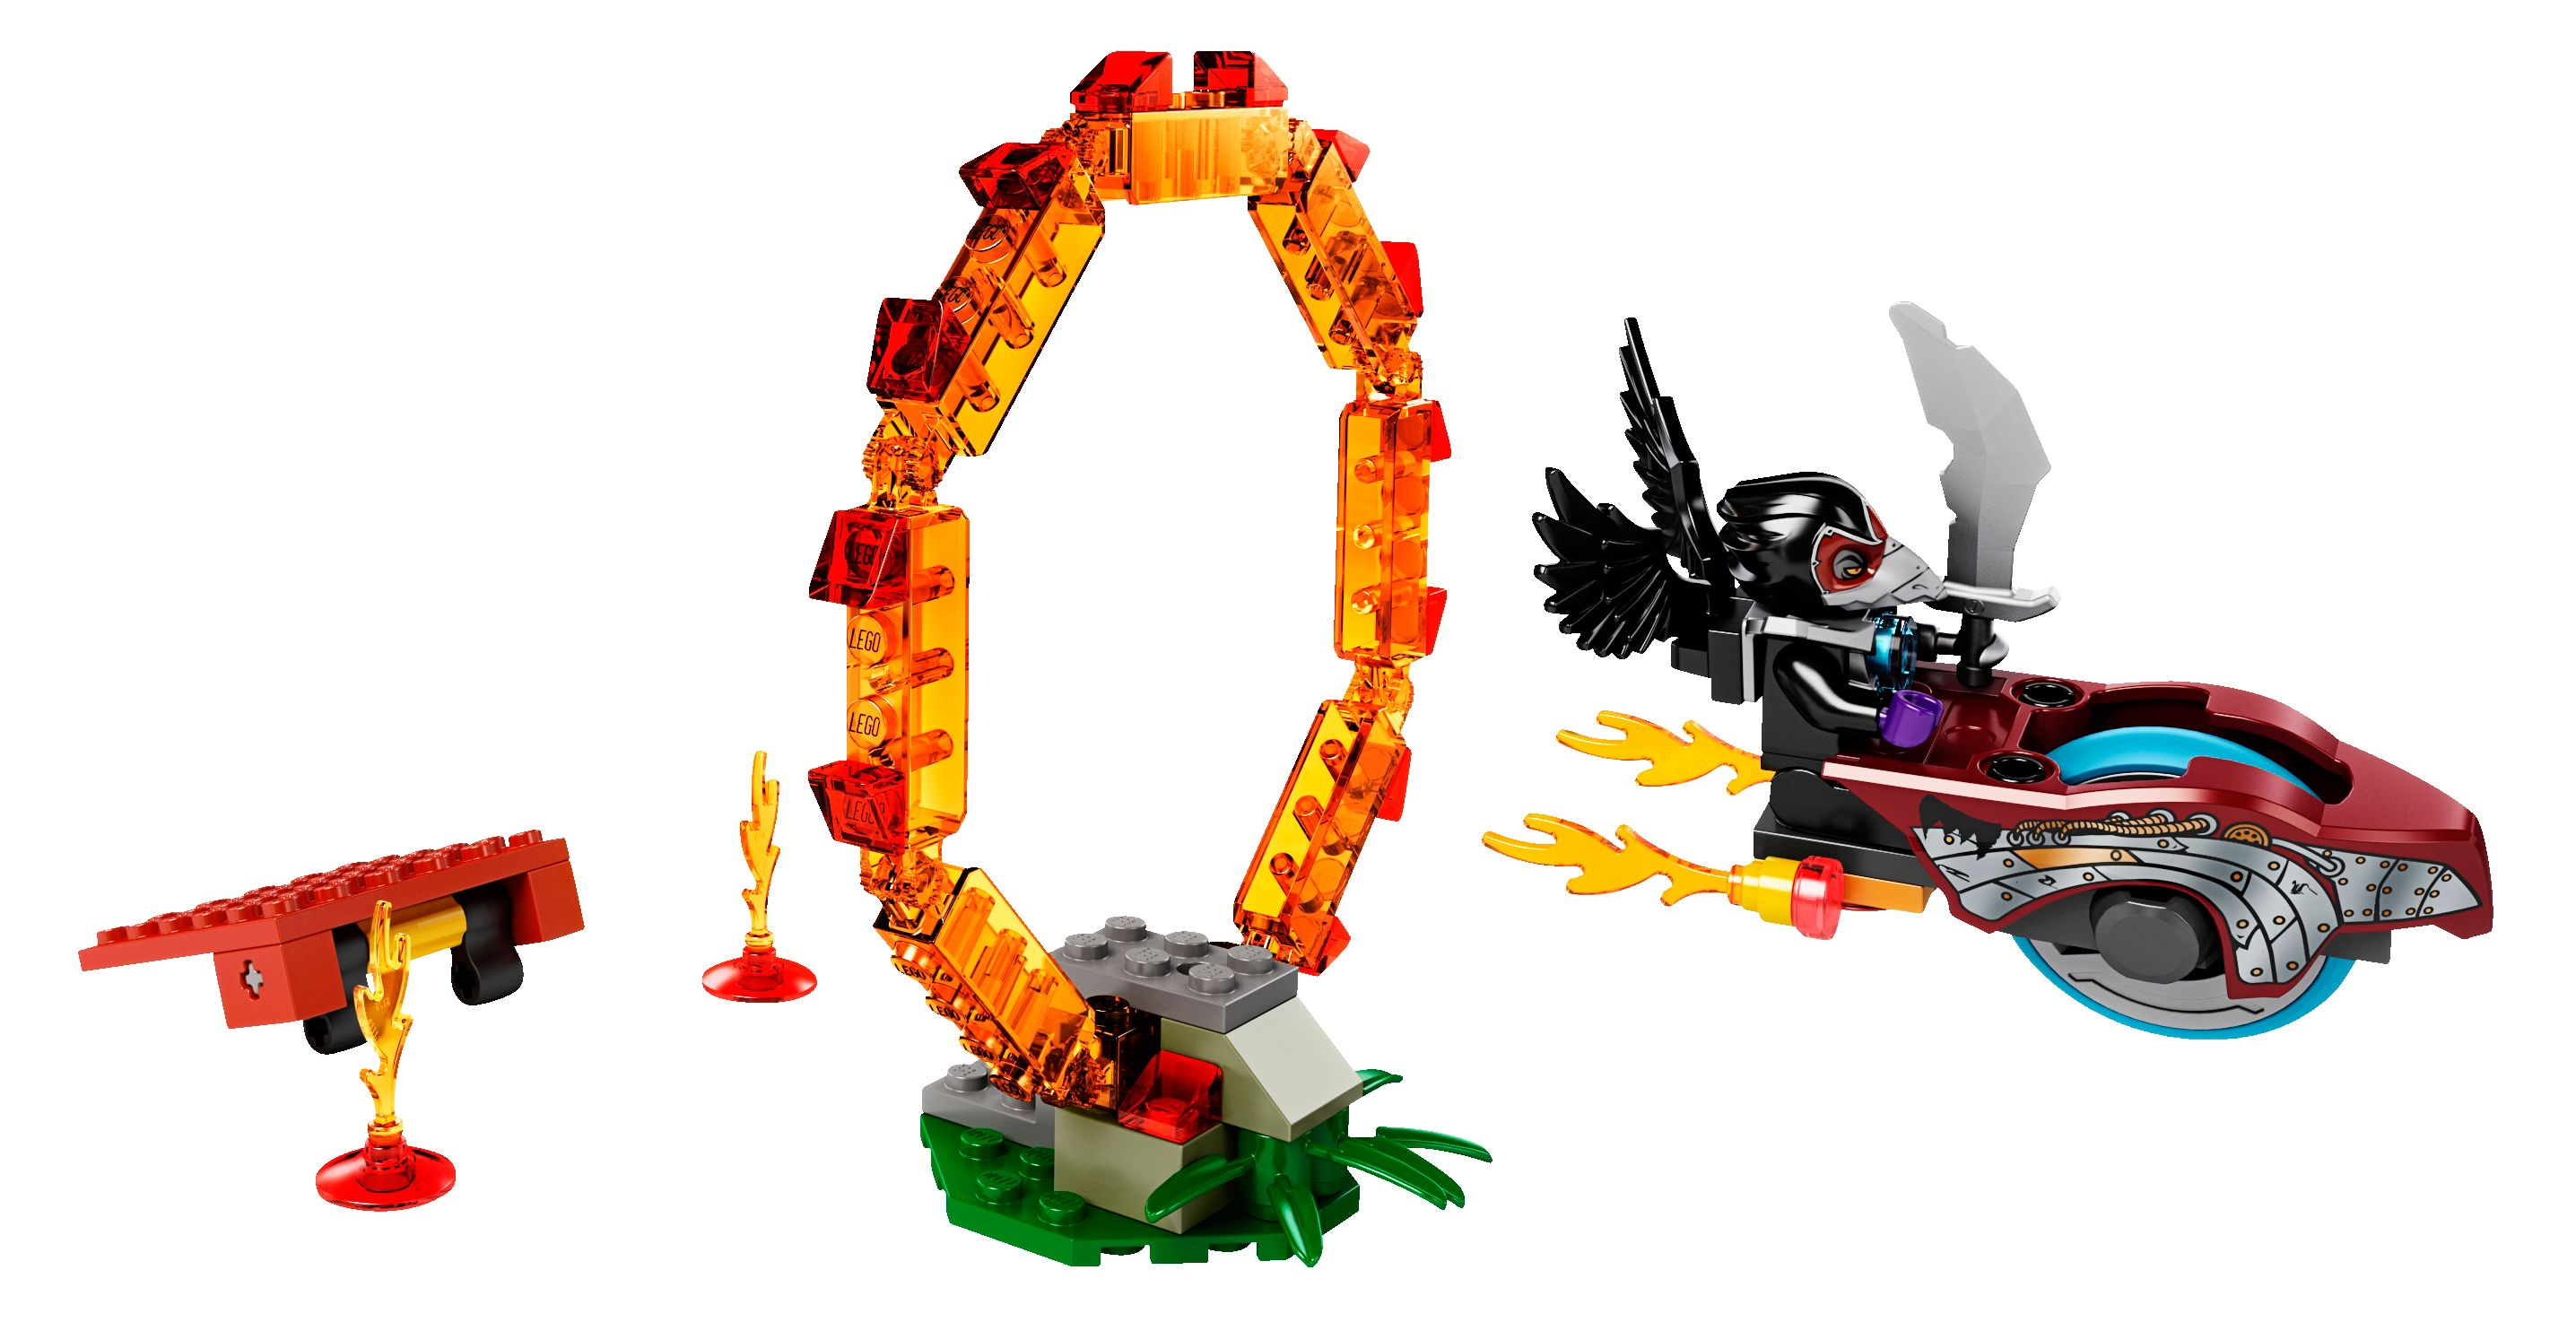 Lego Rings of Fire (70100)